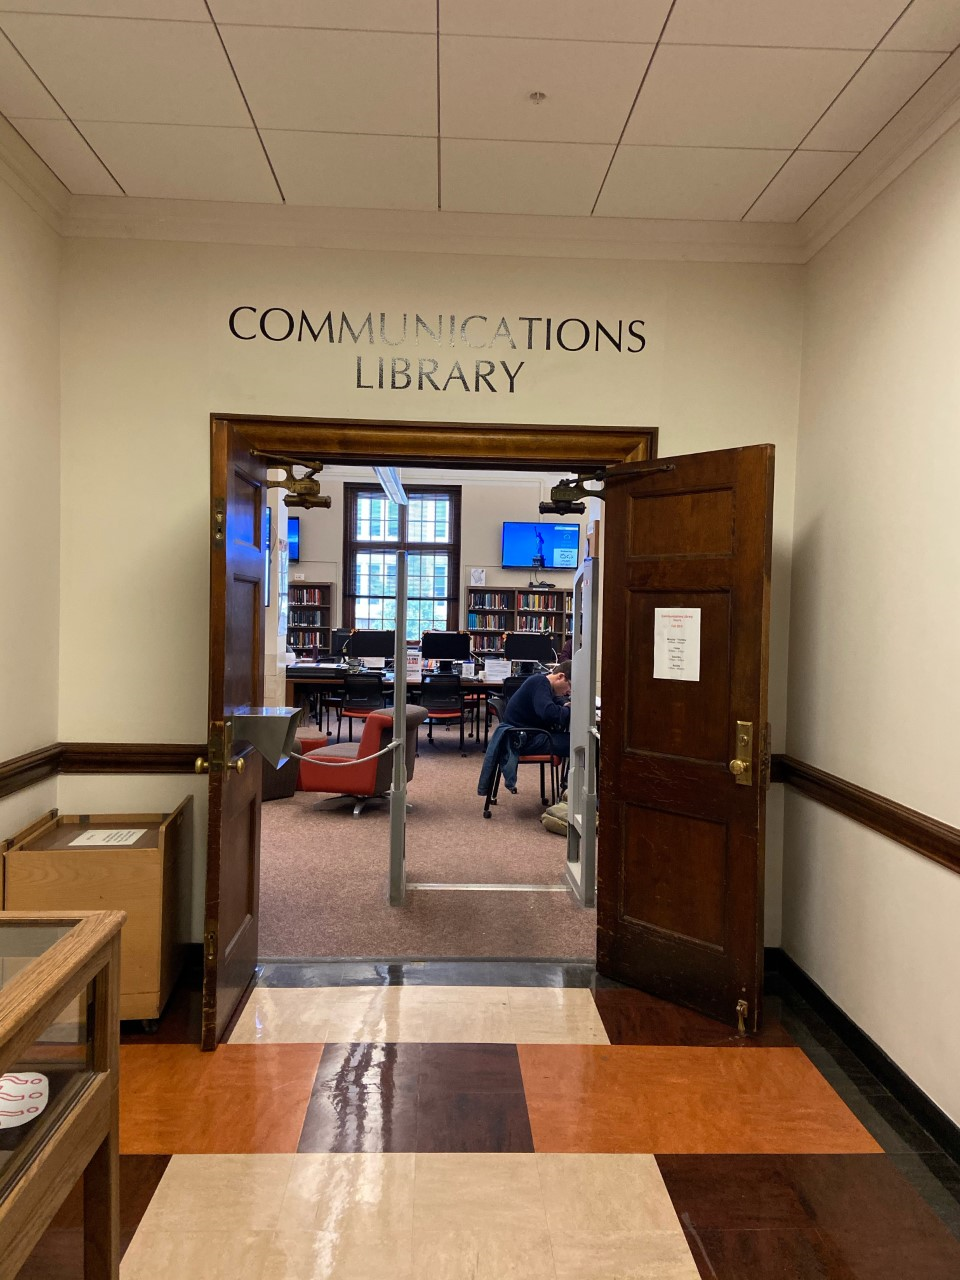 Communications Library's picture